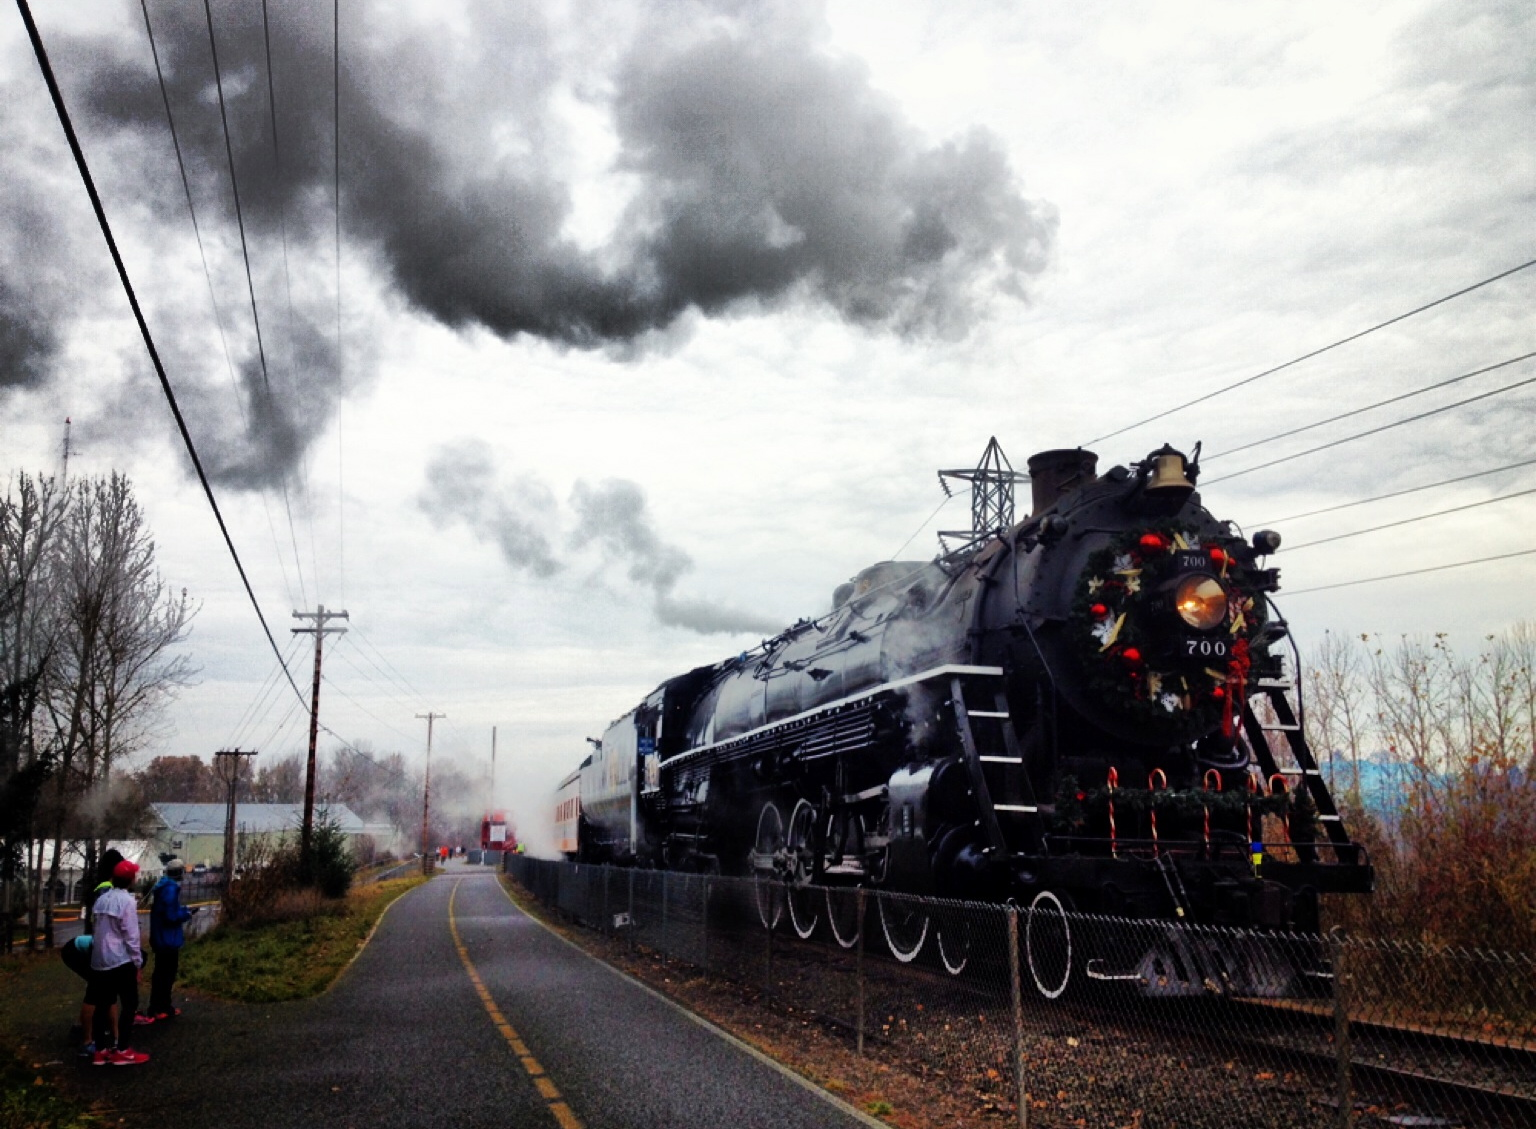 The Holiday Steam Engine